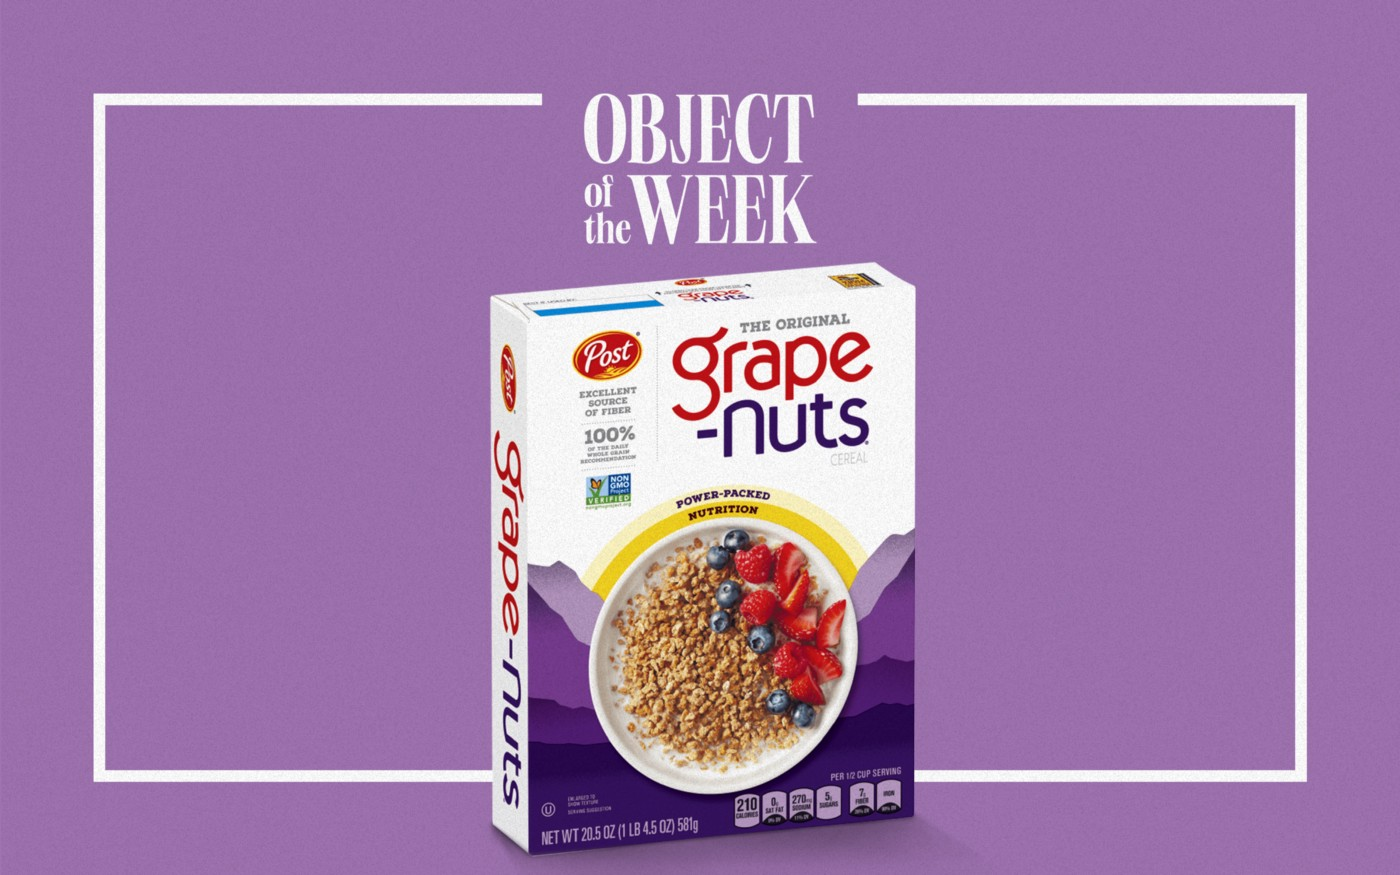 "A Grape-Nuts cereal box photoshopped onto a purple background with the text ""Object of the Week"" and a square frame surrounding the cereal box."